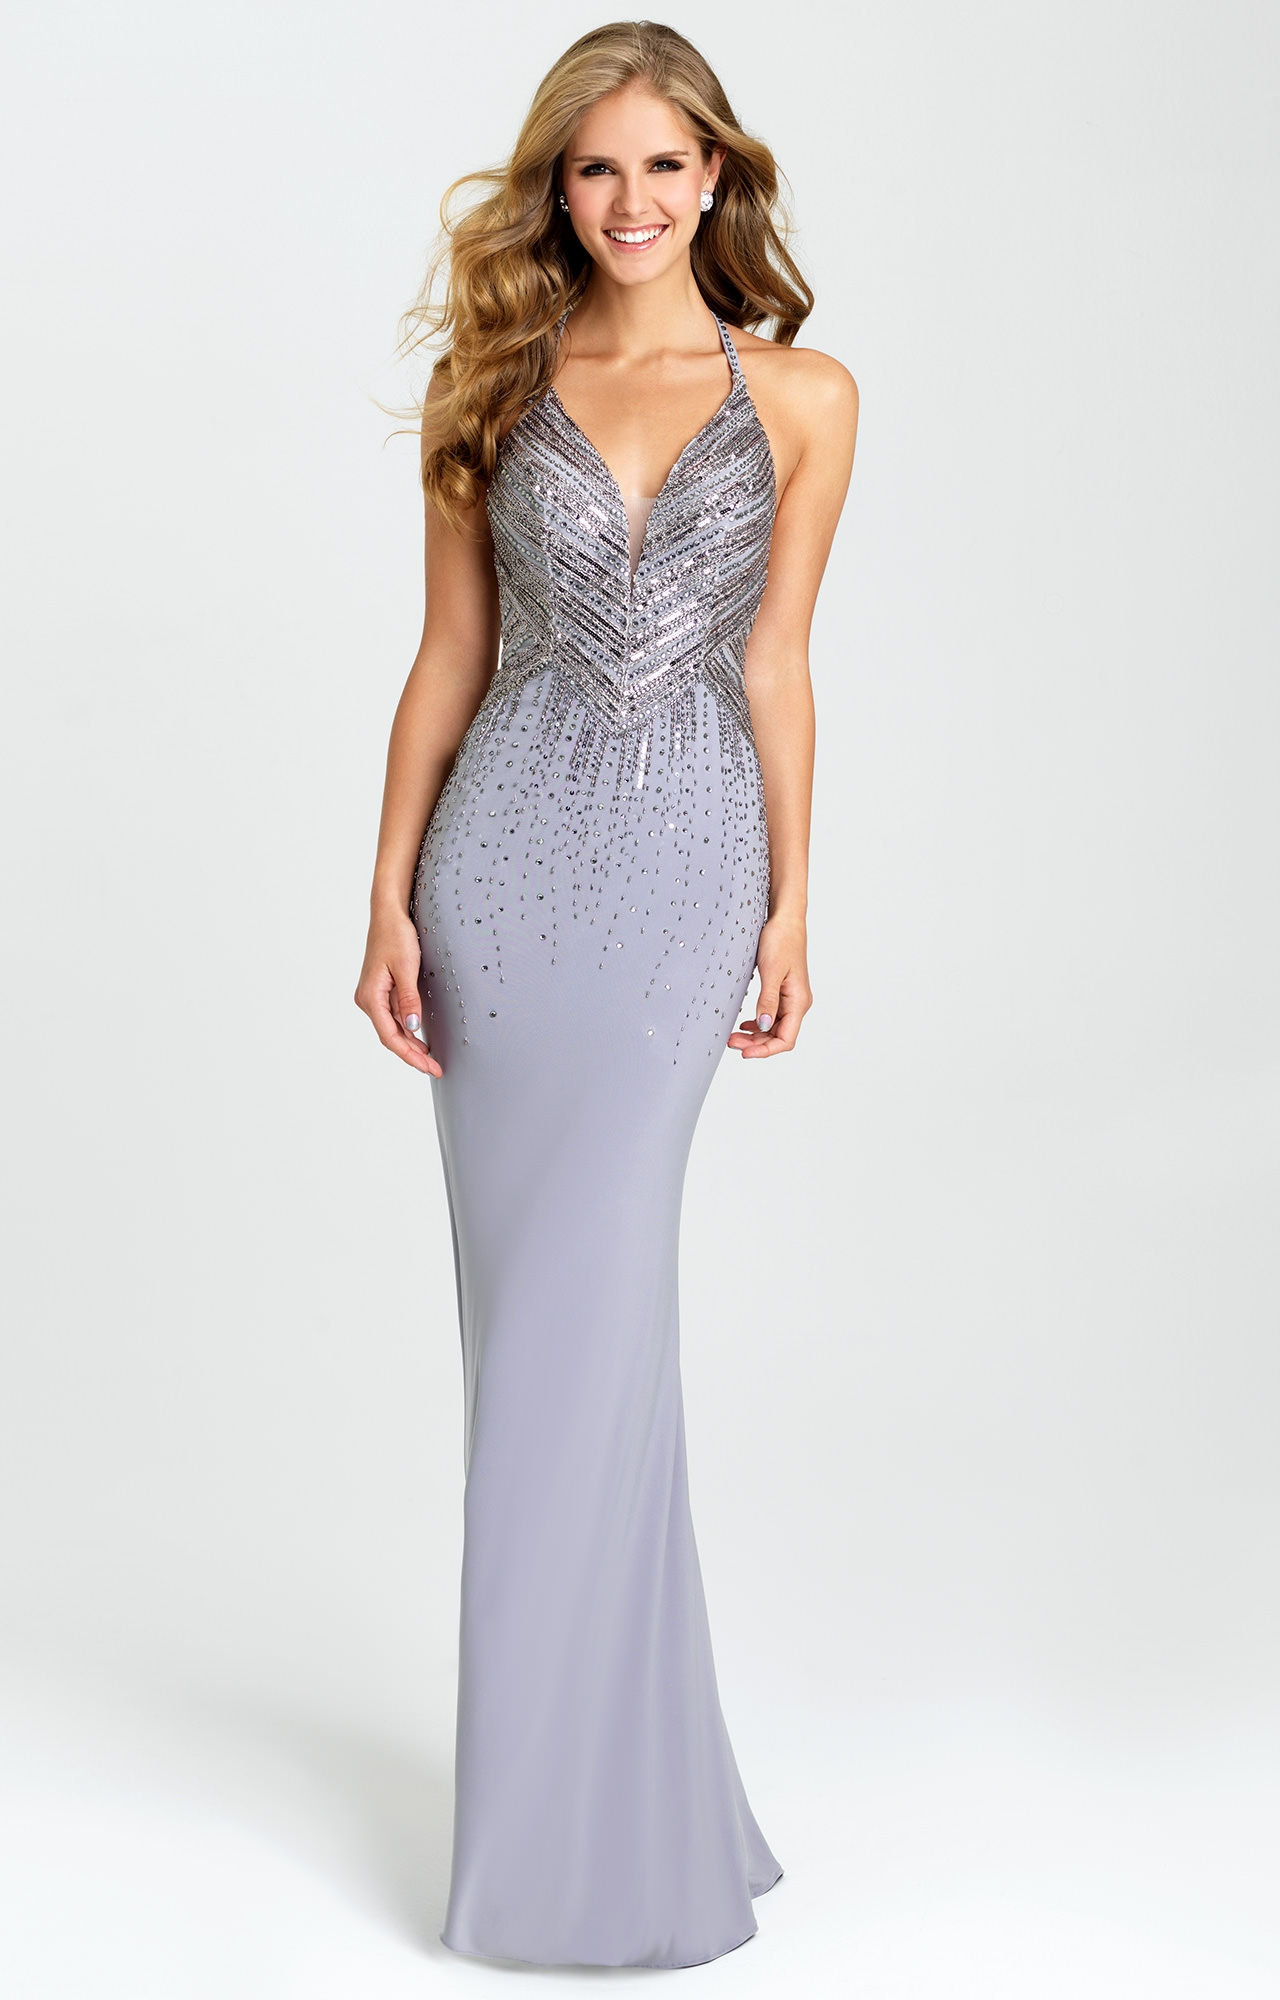 Madison James 16-405 - Great Gatsby Gown Prom Dress